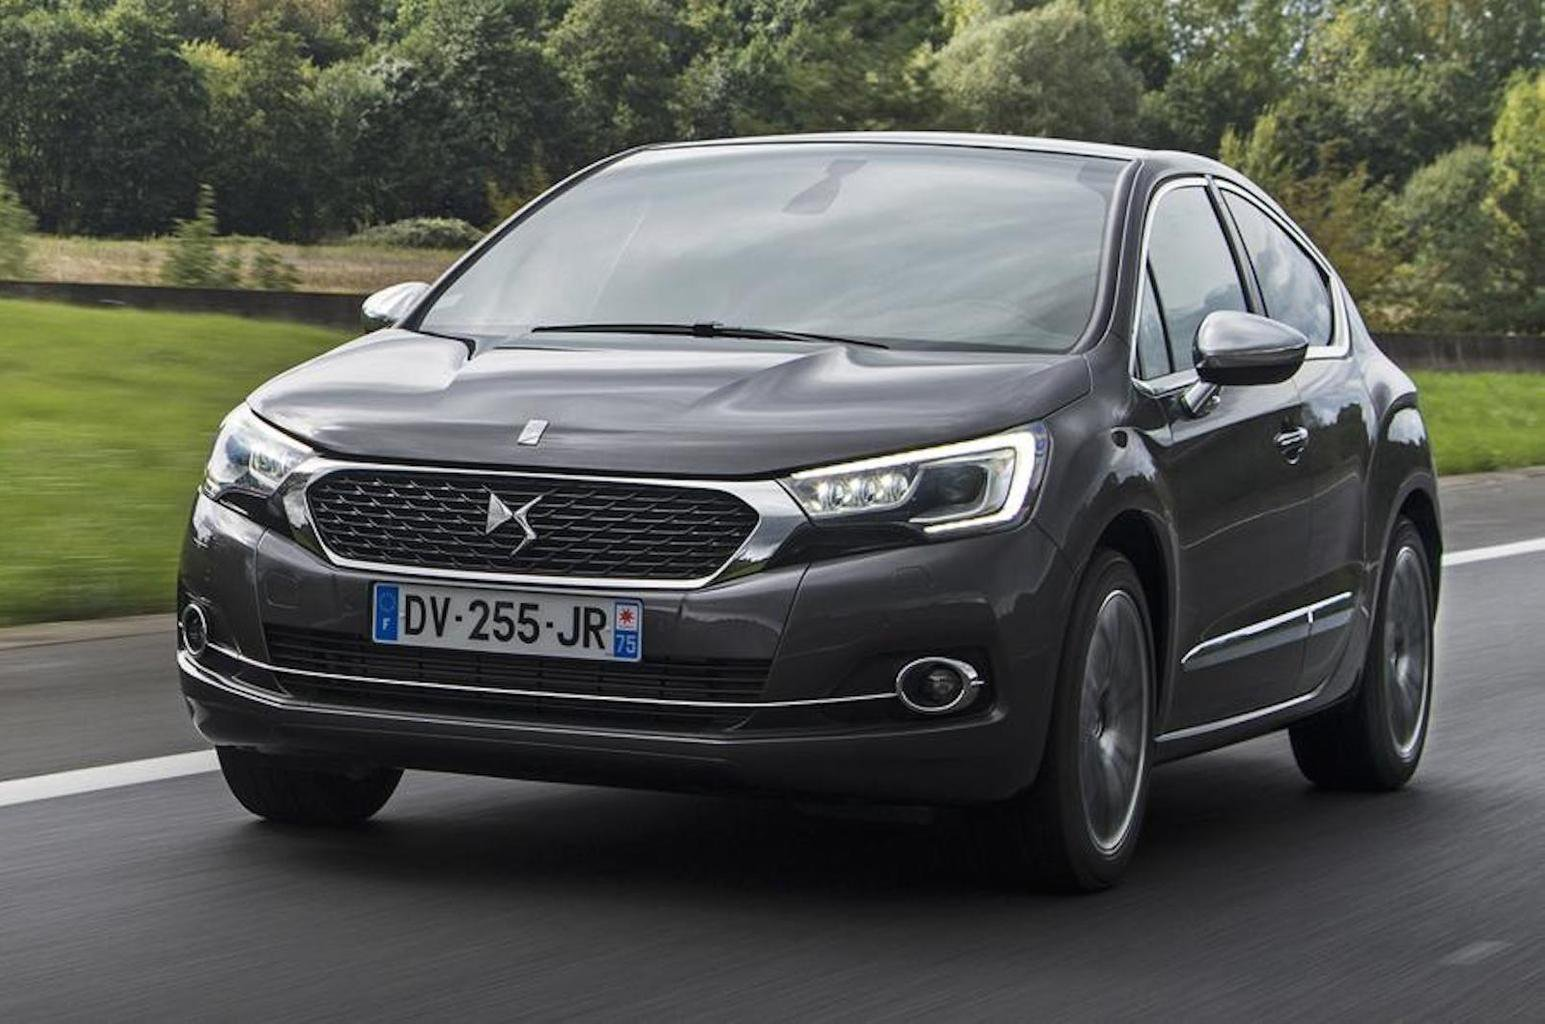 2015 DS4 210 THP review